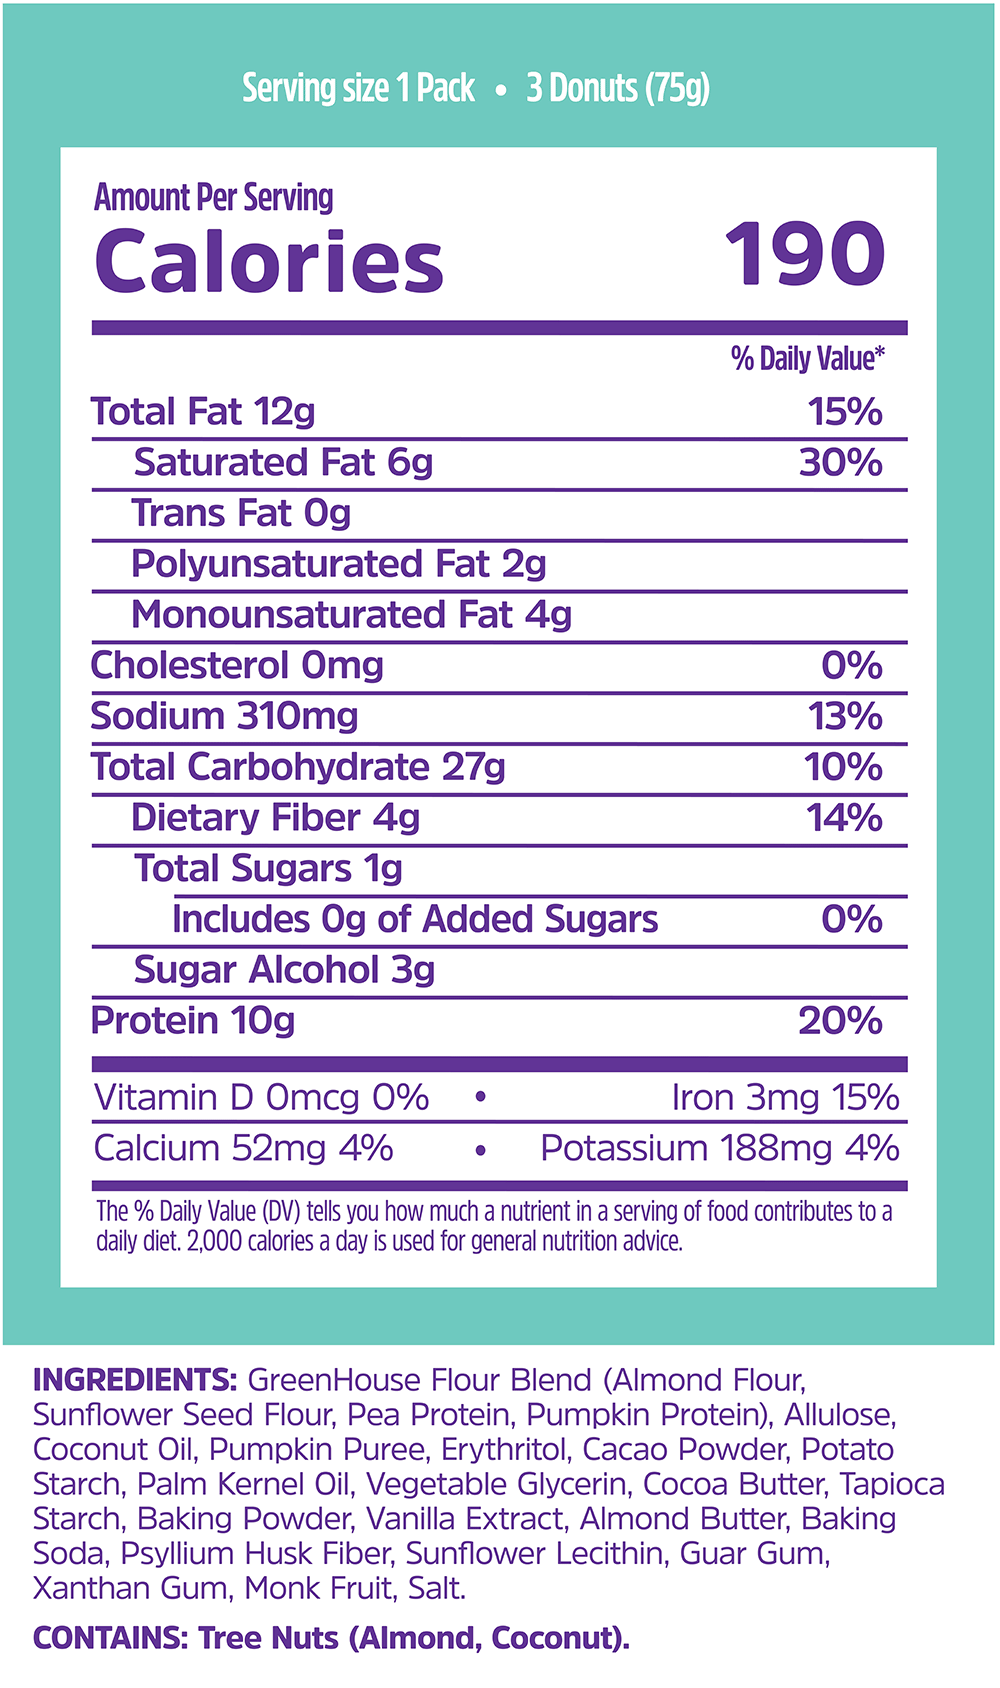 Nutrition facts for GreenHouse Foods plant-based chocolate donut